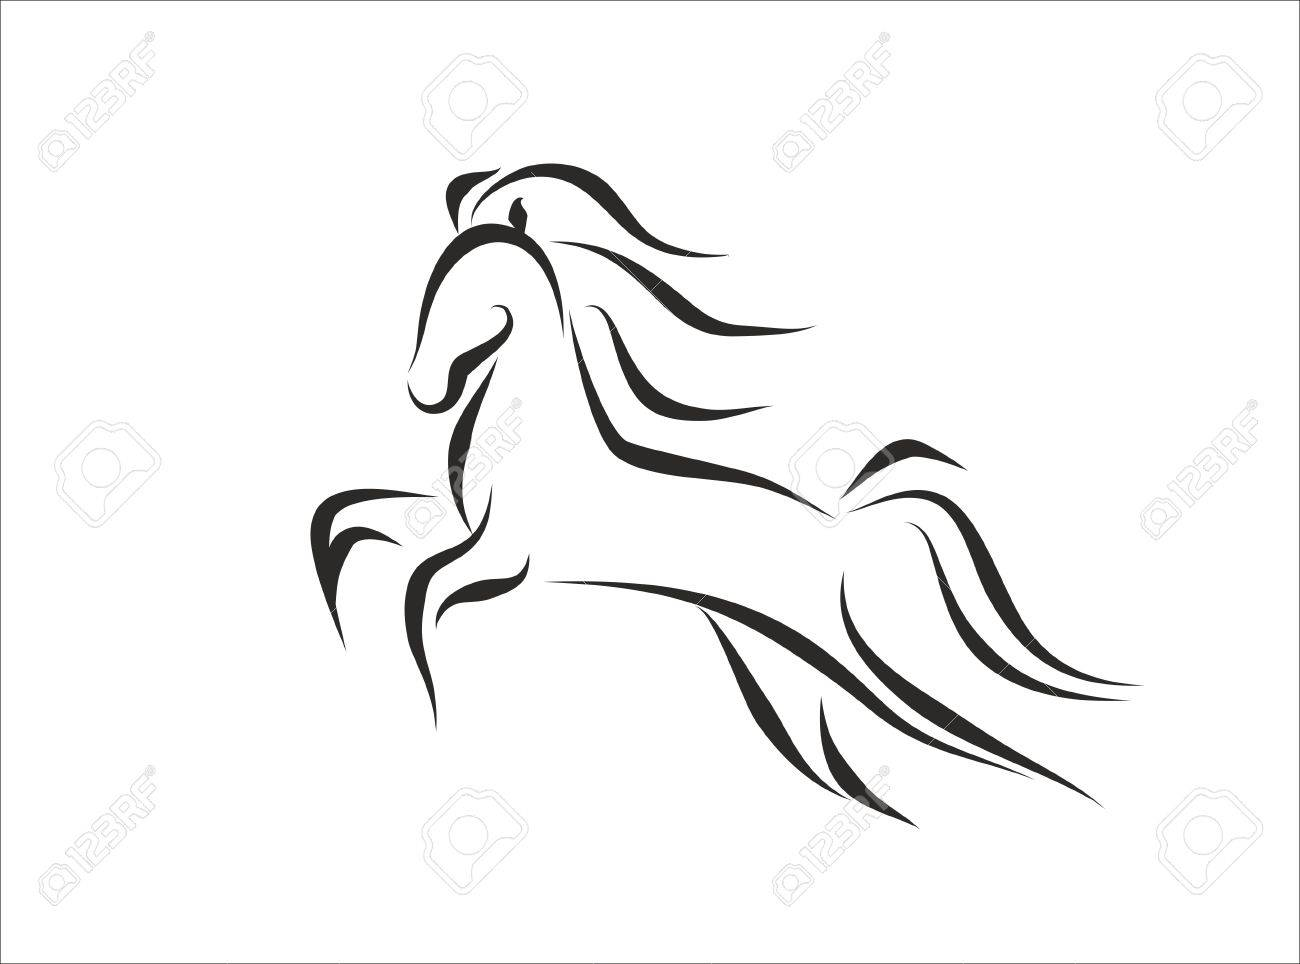 Silhouette Of A Wild Horse Jumping Stock Photo Picture And Royalty Free Image Image 68349413